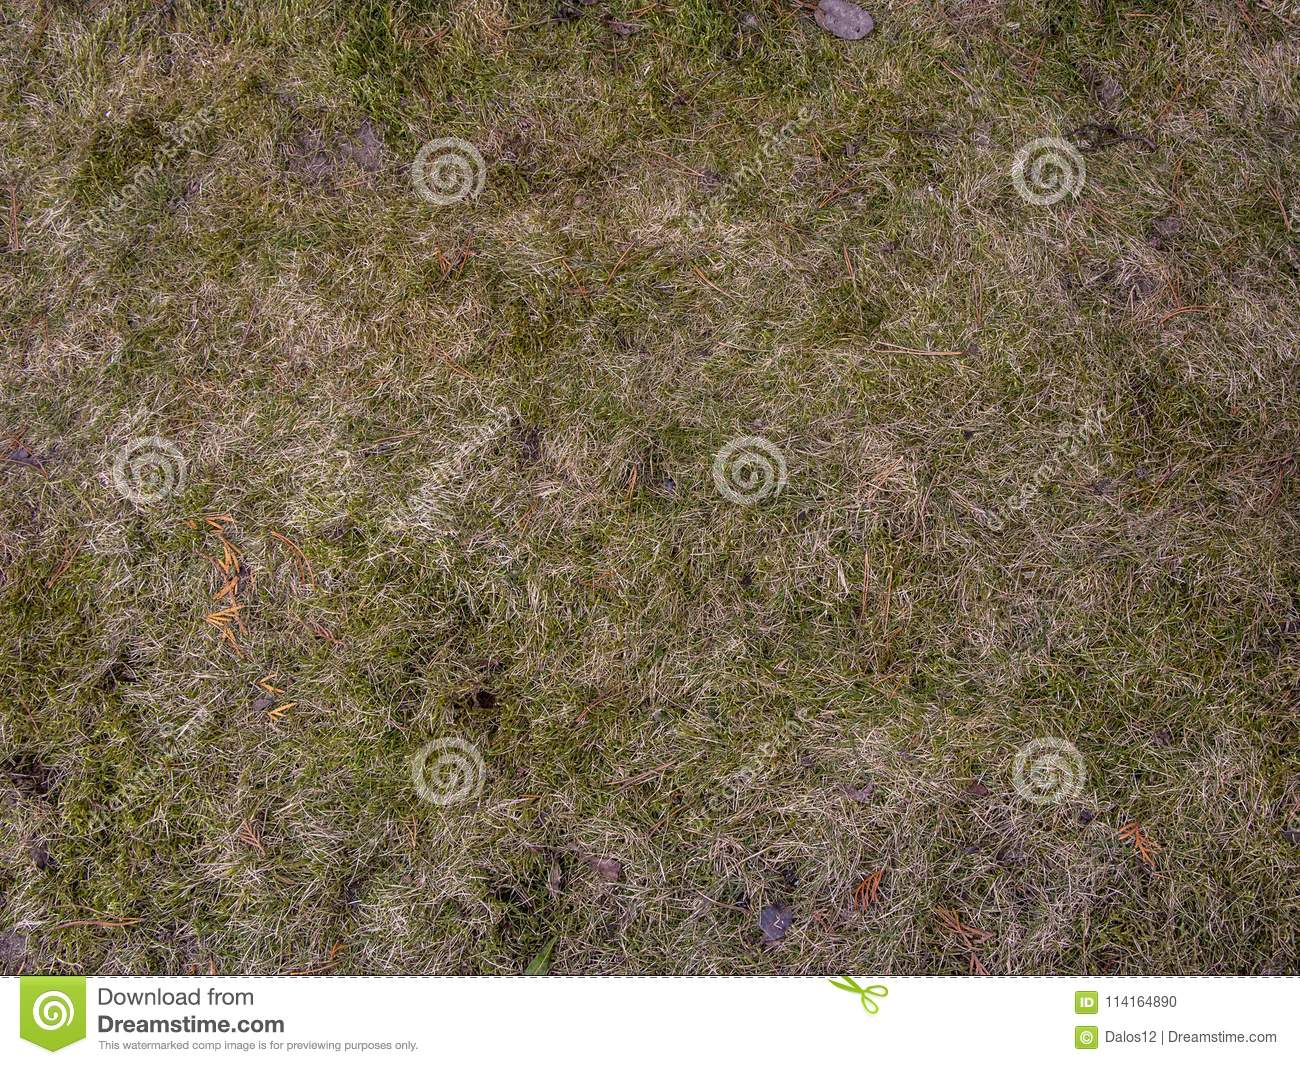 dirt grass texture seamless. Seamless Tileable Texture Of The Ground Covered With Dry Grass. Close Up Theblack And Grass Texture. Dirt Color Soil Background